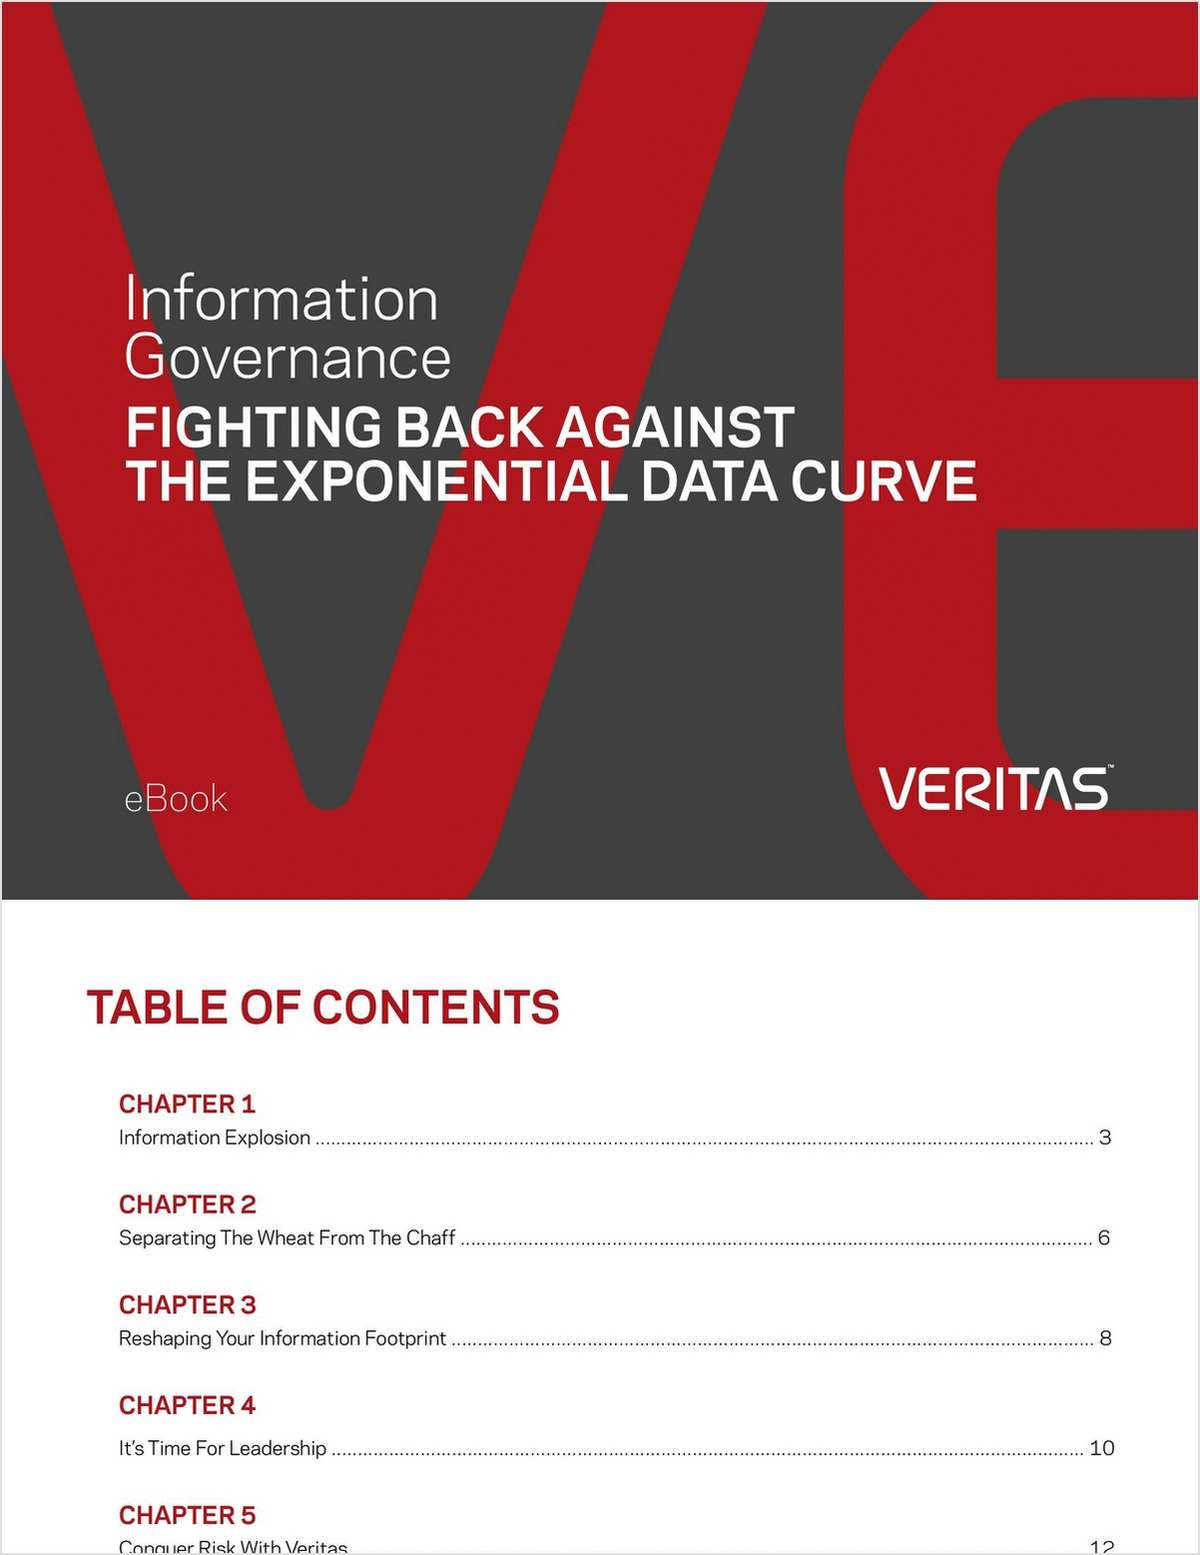 Information Governance Fighting Back Against the Exponential Data Curve